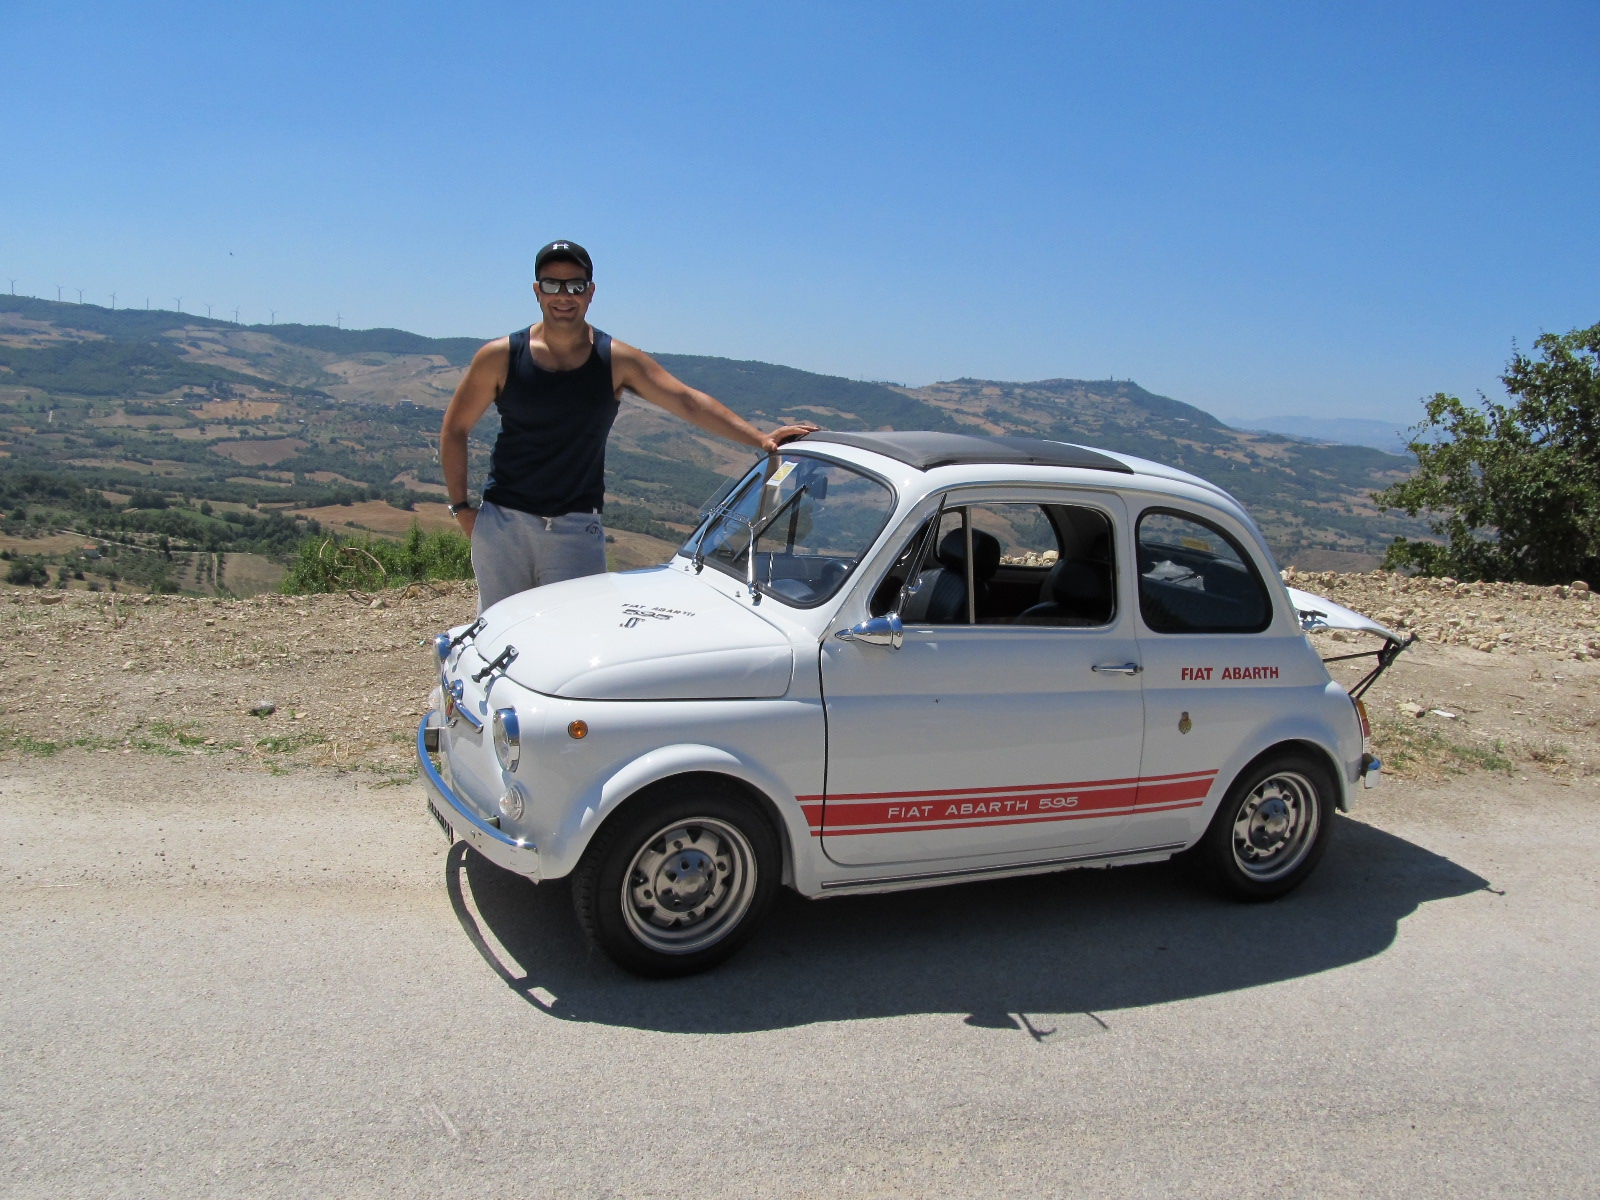 abarth fiat 500 595 1959 1971 the museum of cars. Black Bedroom Furniture Sets. Home Design Ideas